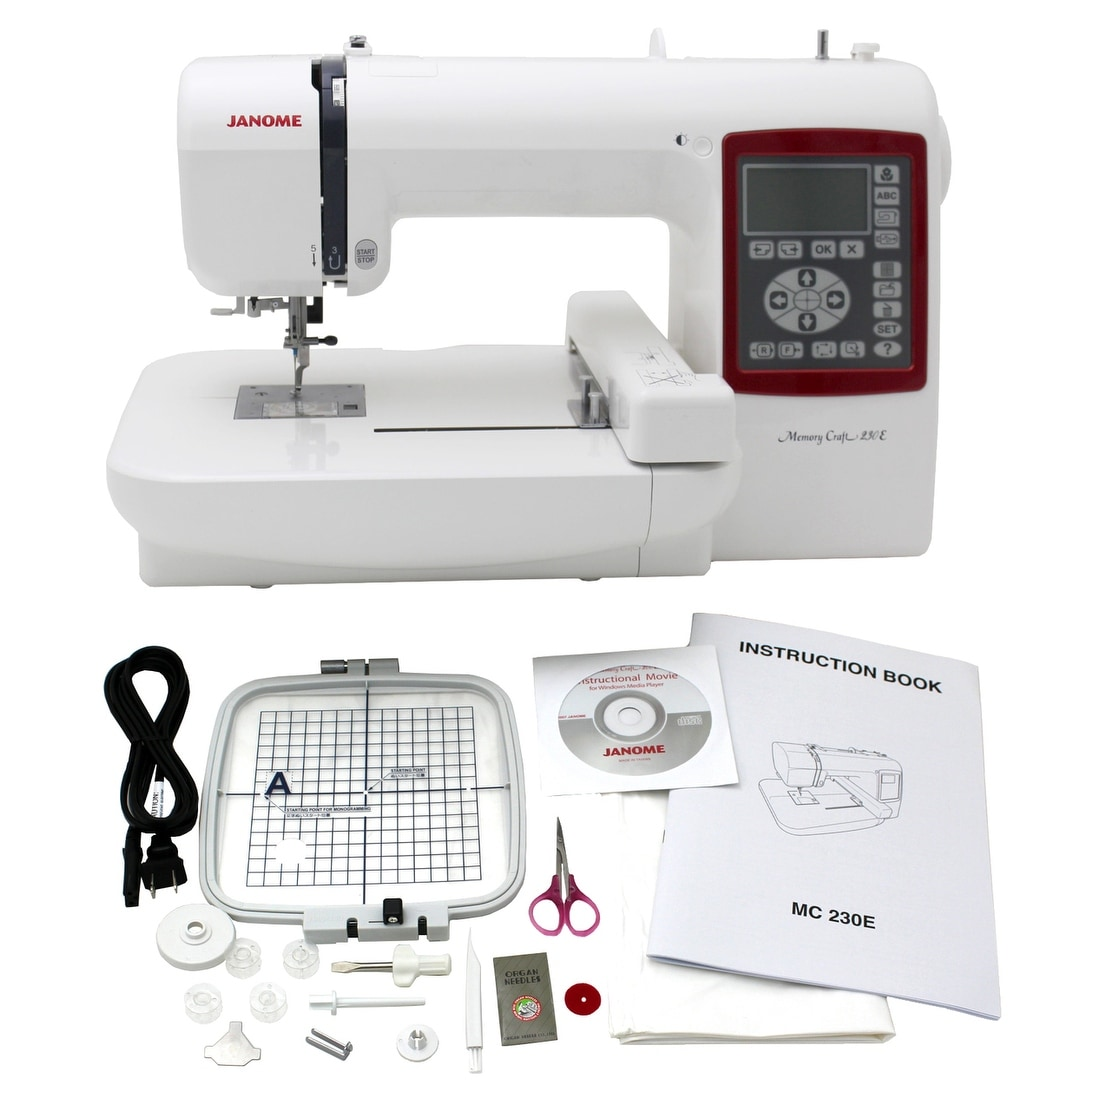 Janome 200E Small Embroidery Hoop